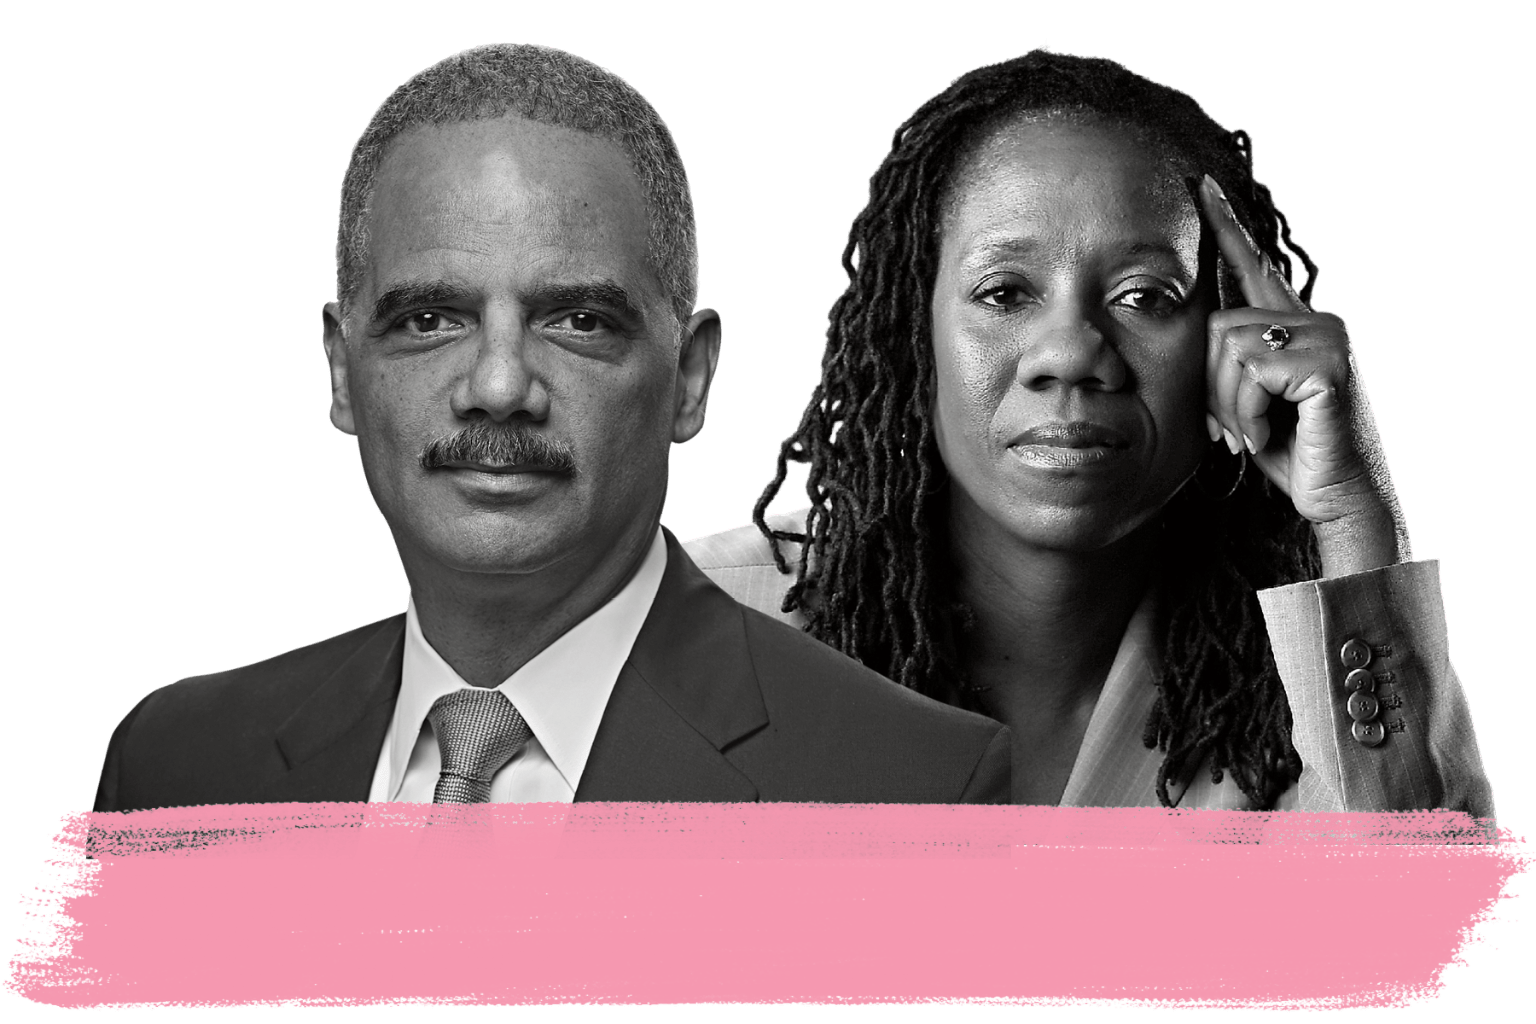 Eric H. Holder, Jr. and Sherrilyn Ifill